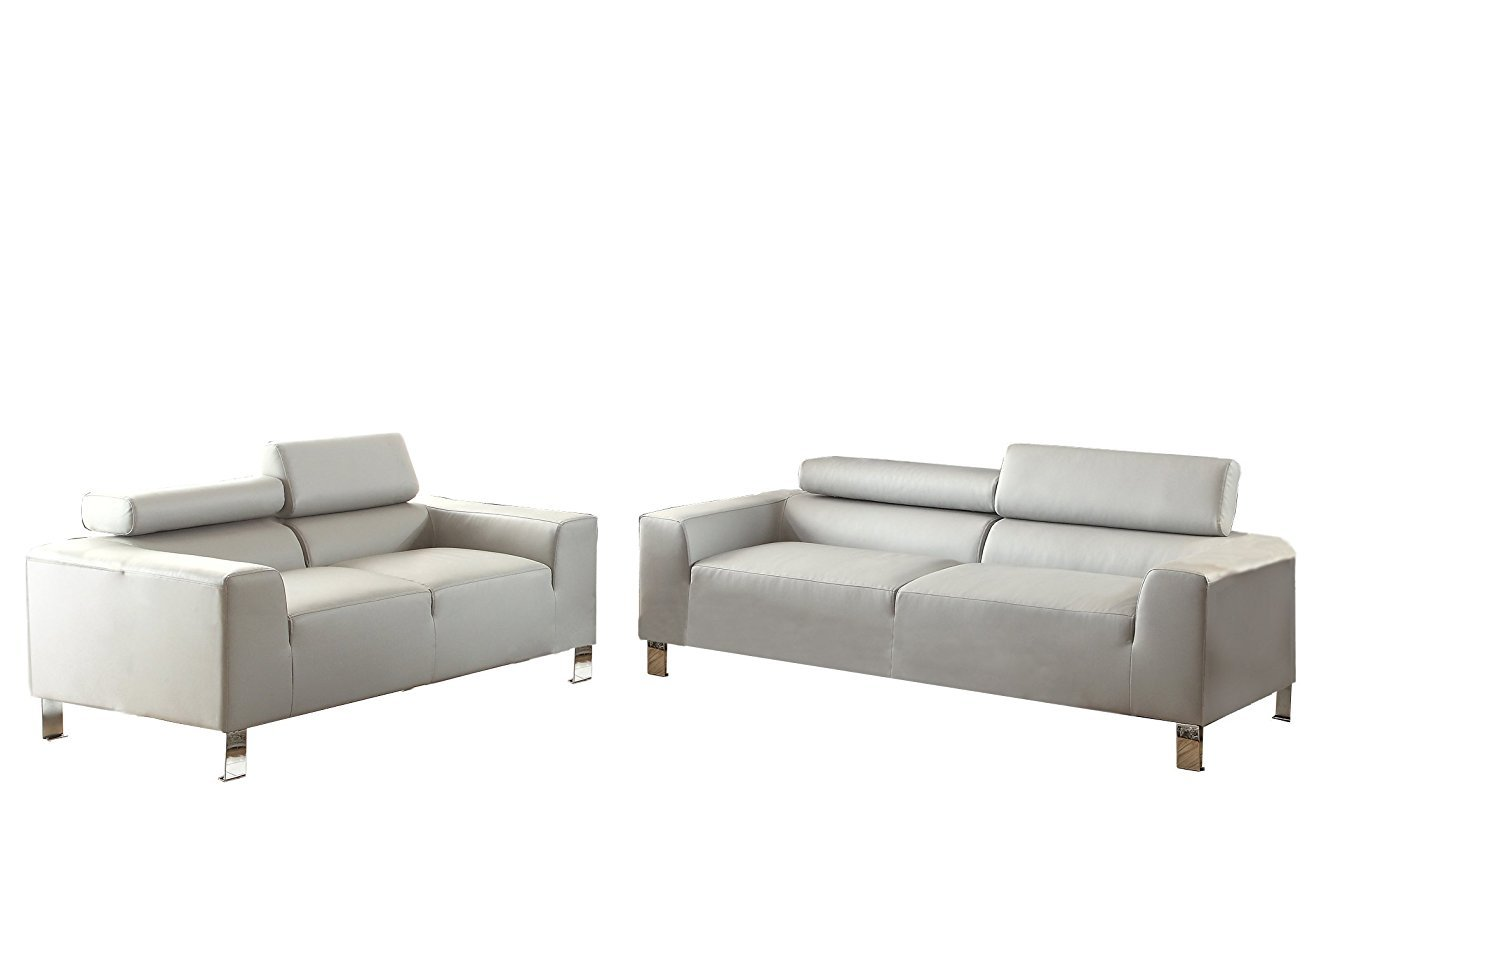 Leather sofa set for living room home furniture design for Leather sofa and loveseat set